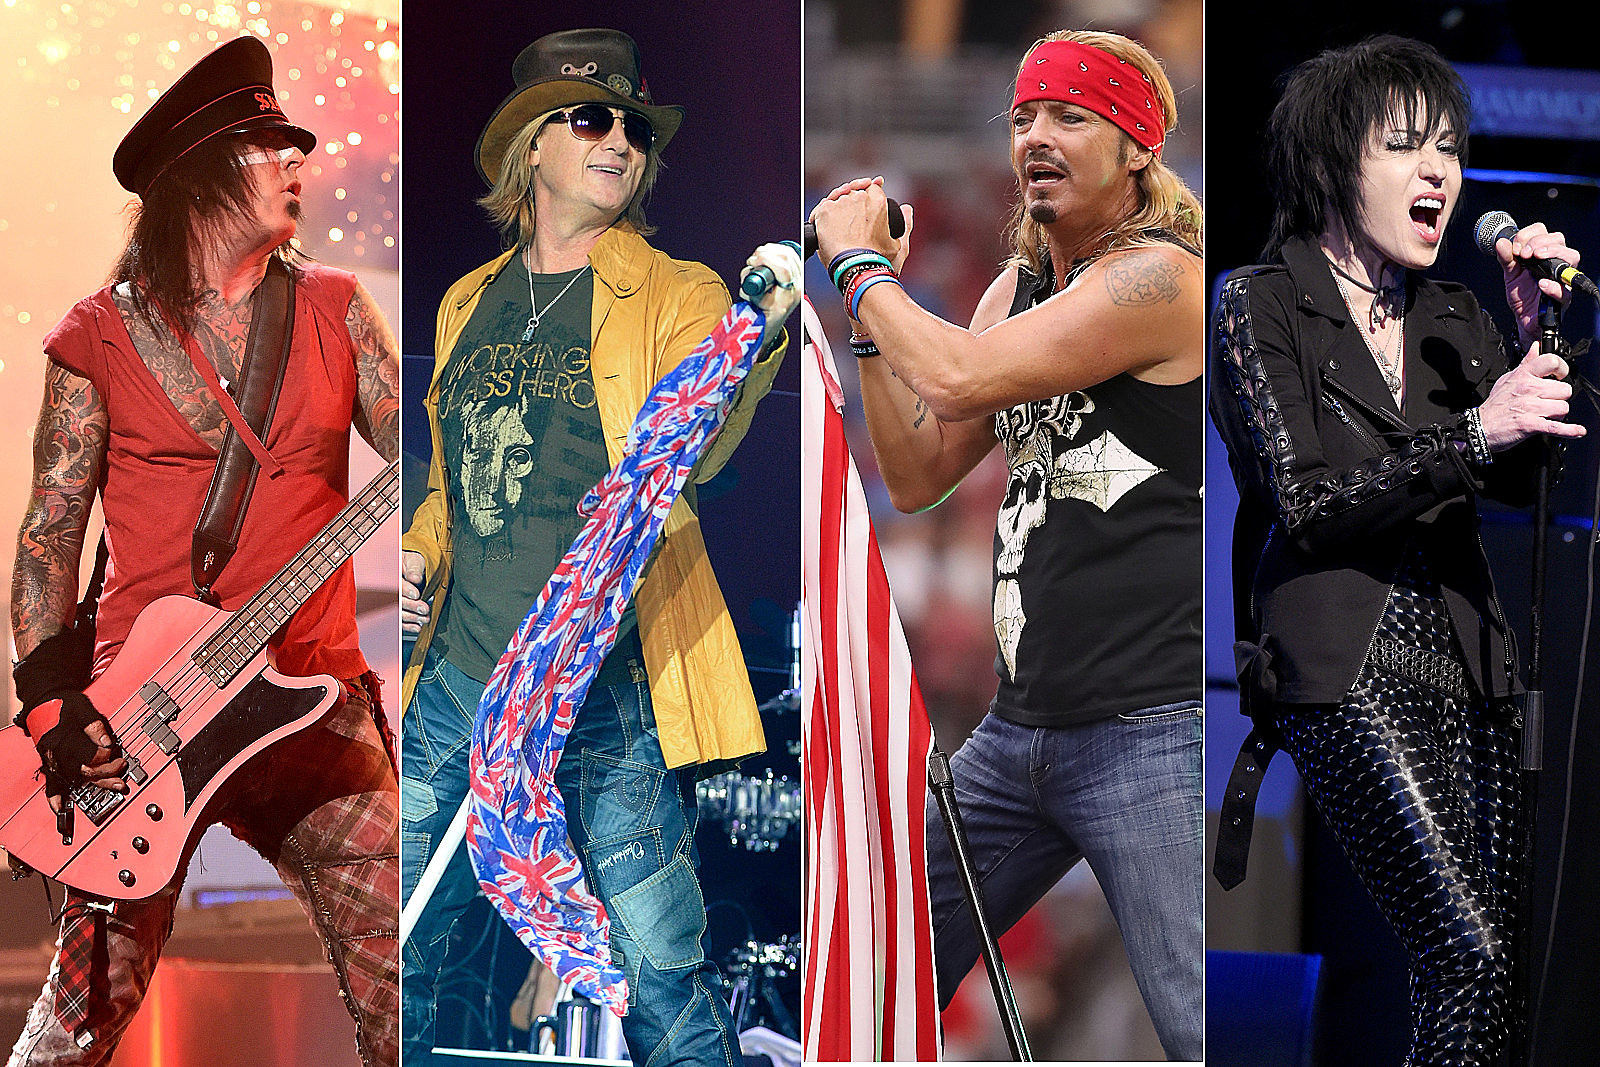 Motley Crue, Def Leppard, Poison and Joan Jett Tour Moved to '22